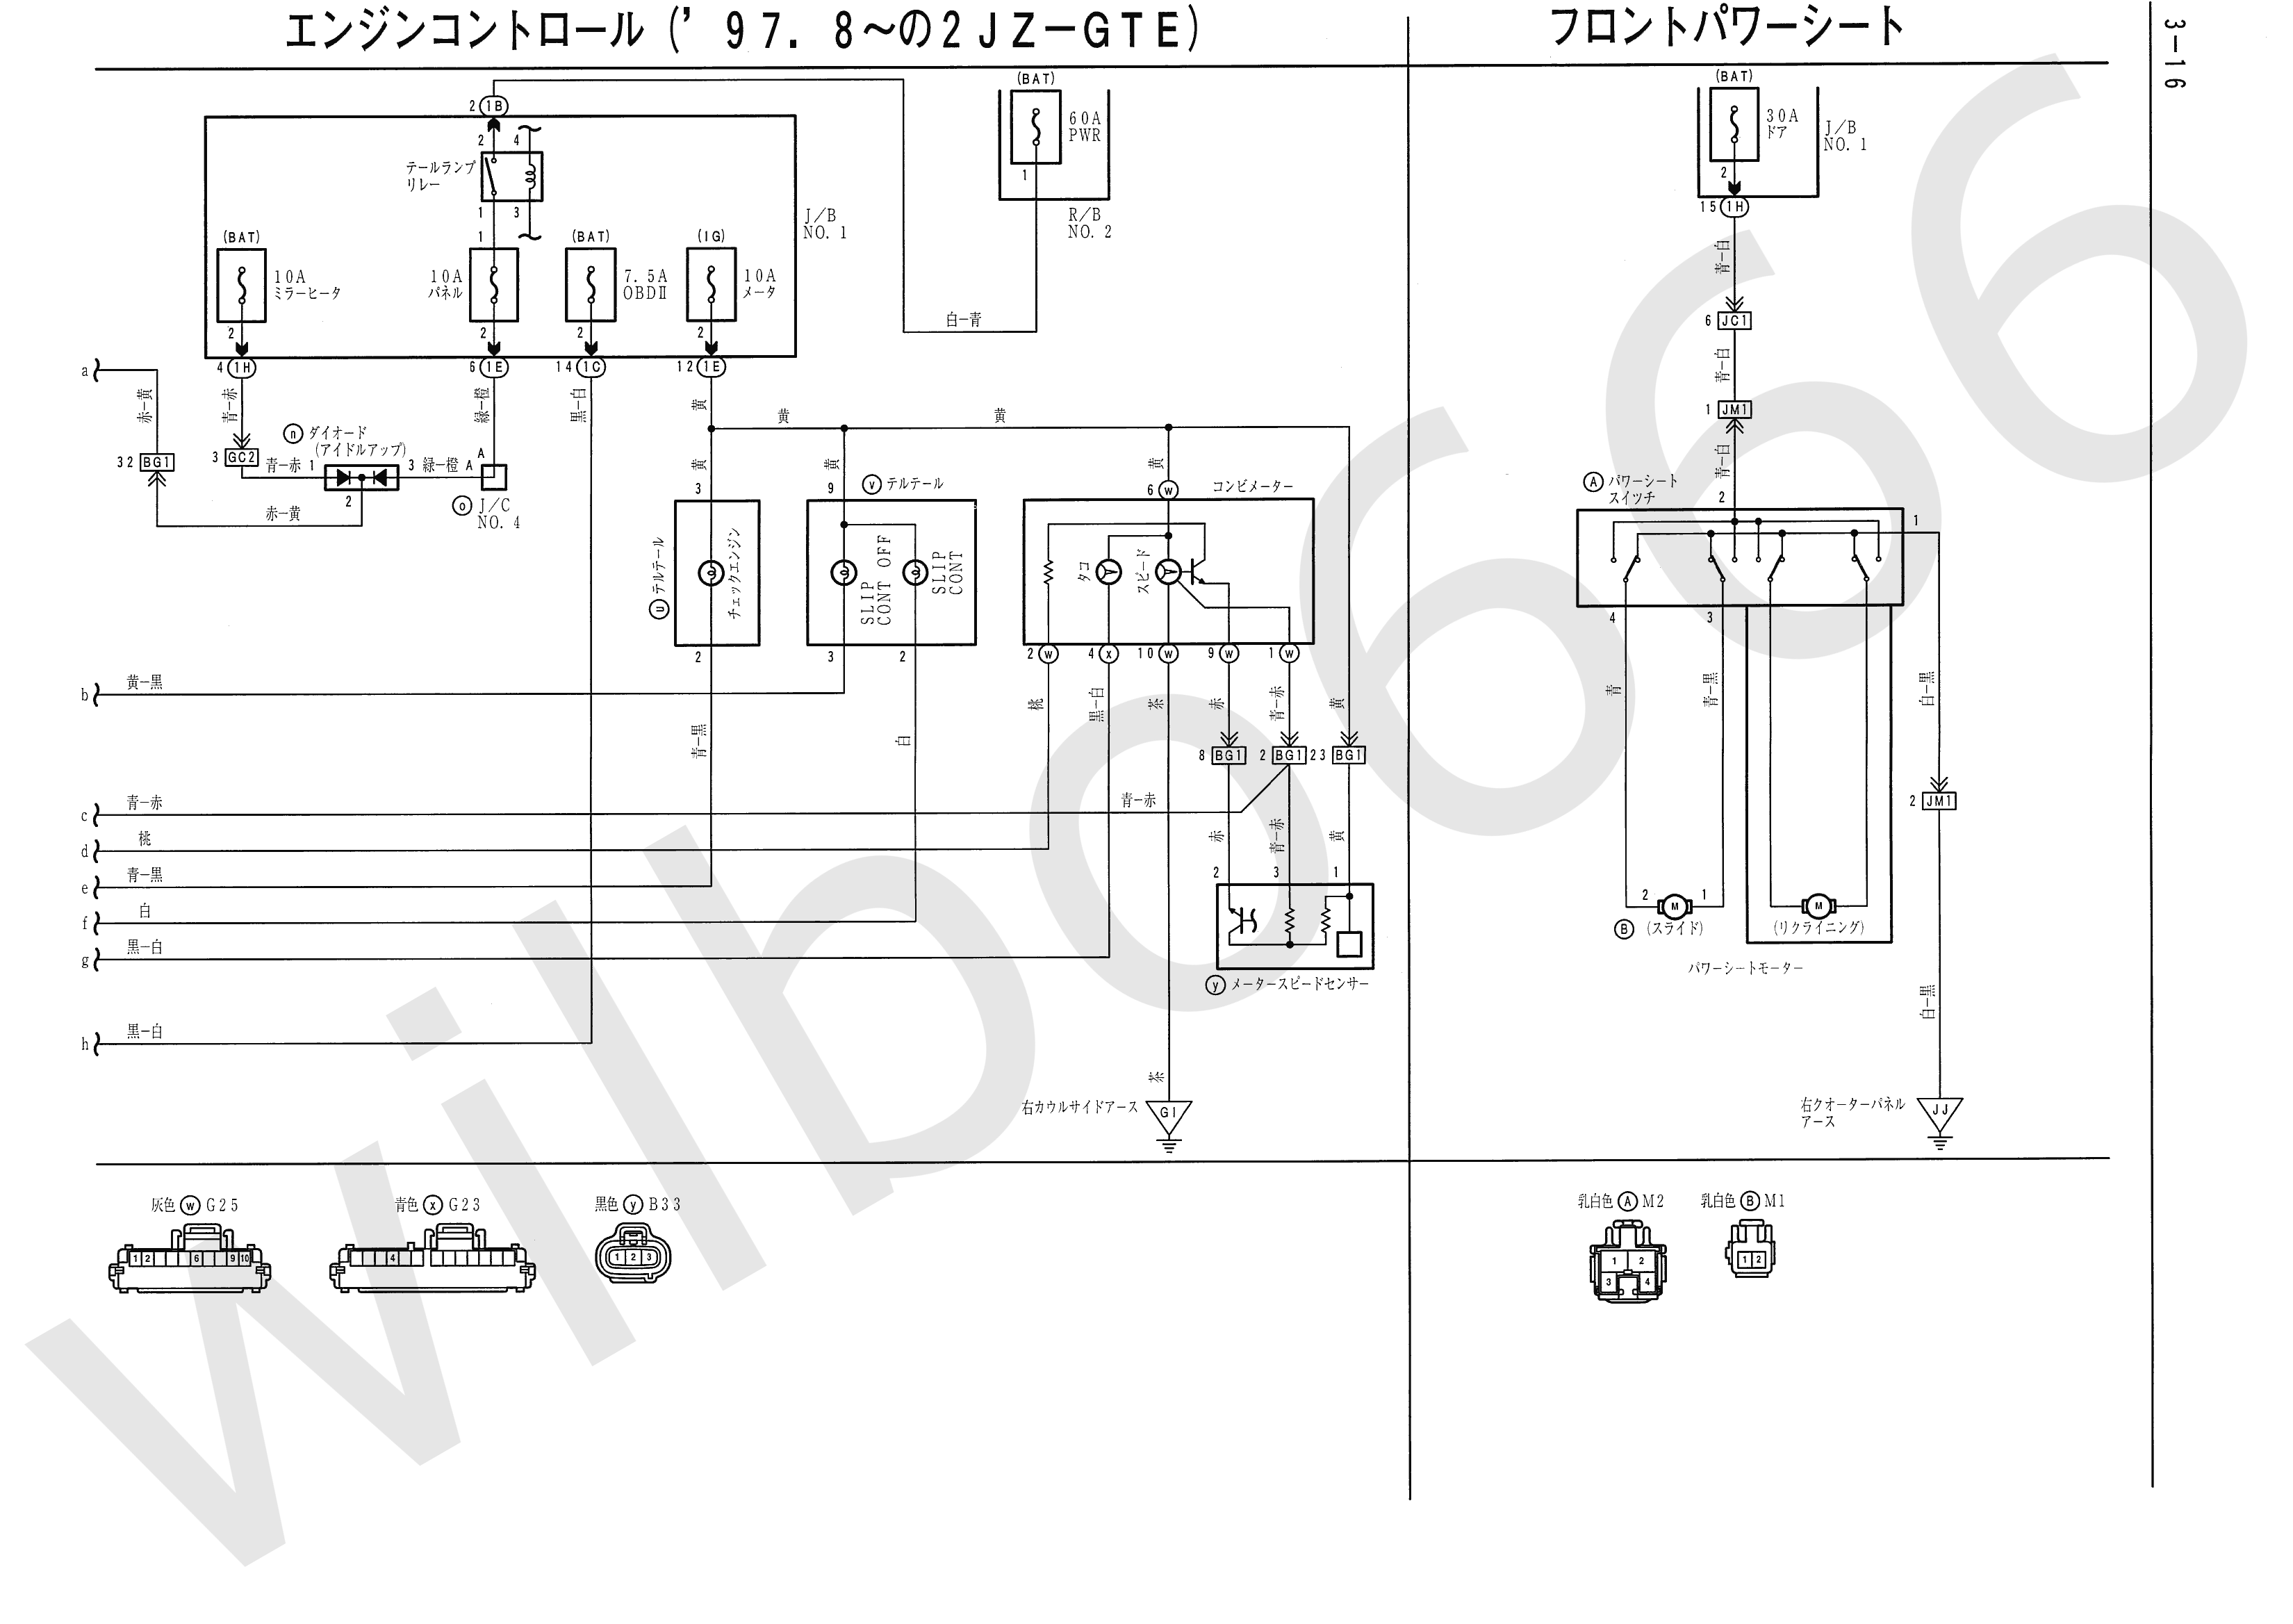 Wilbo666 2jz Gte Vvti Jza80 Supra Engine Wiring Toyota Ecu Diagram Electrical Book 6742505